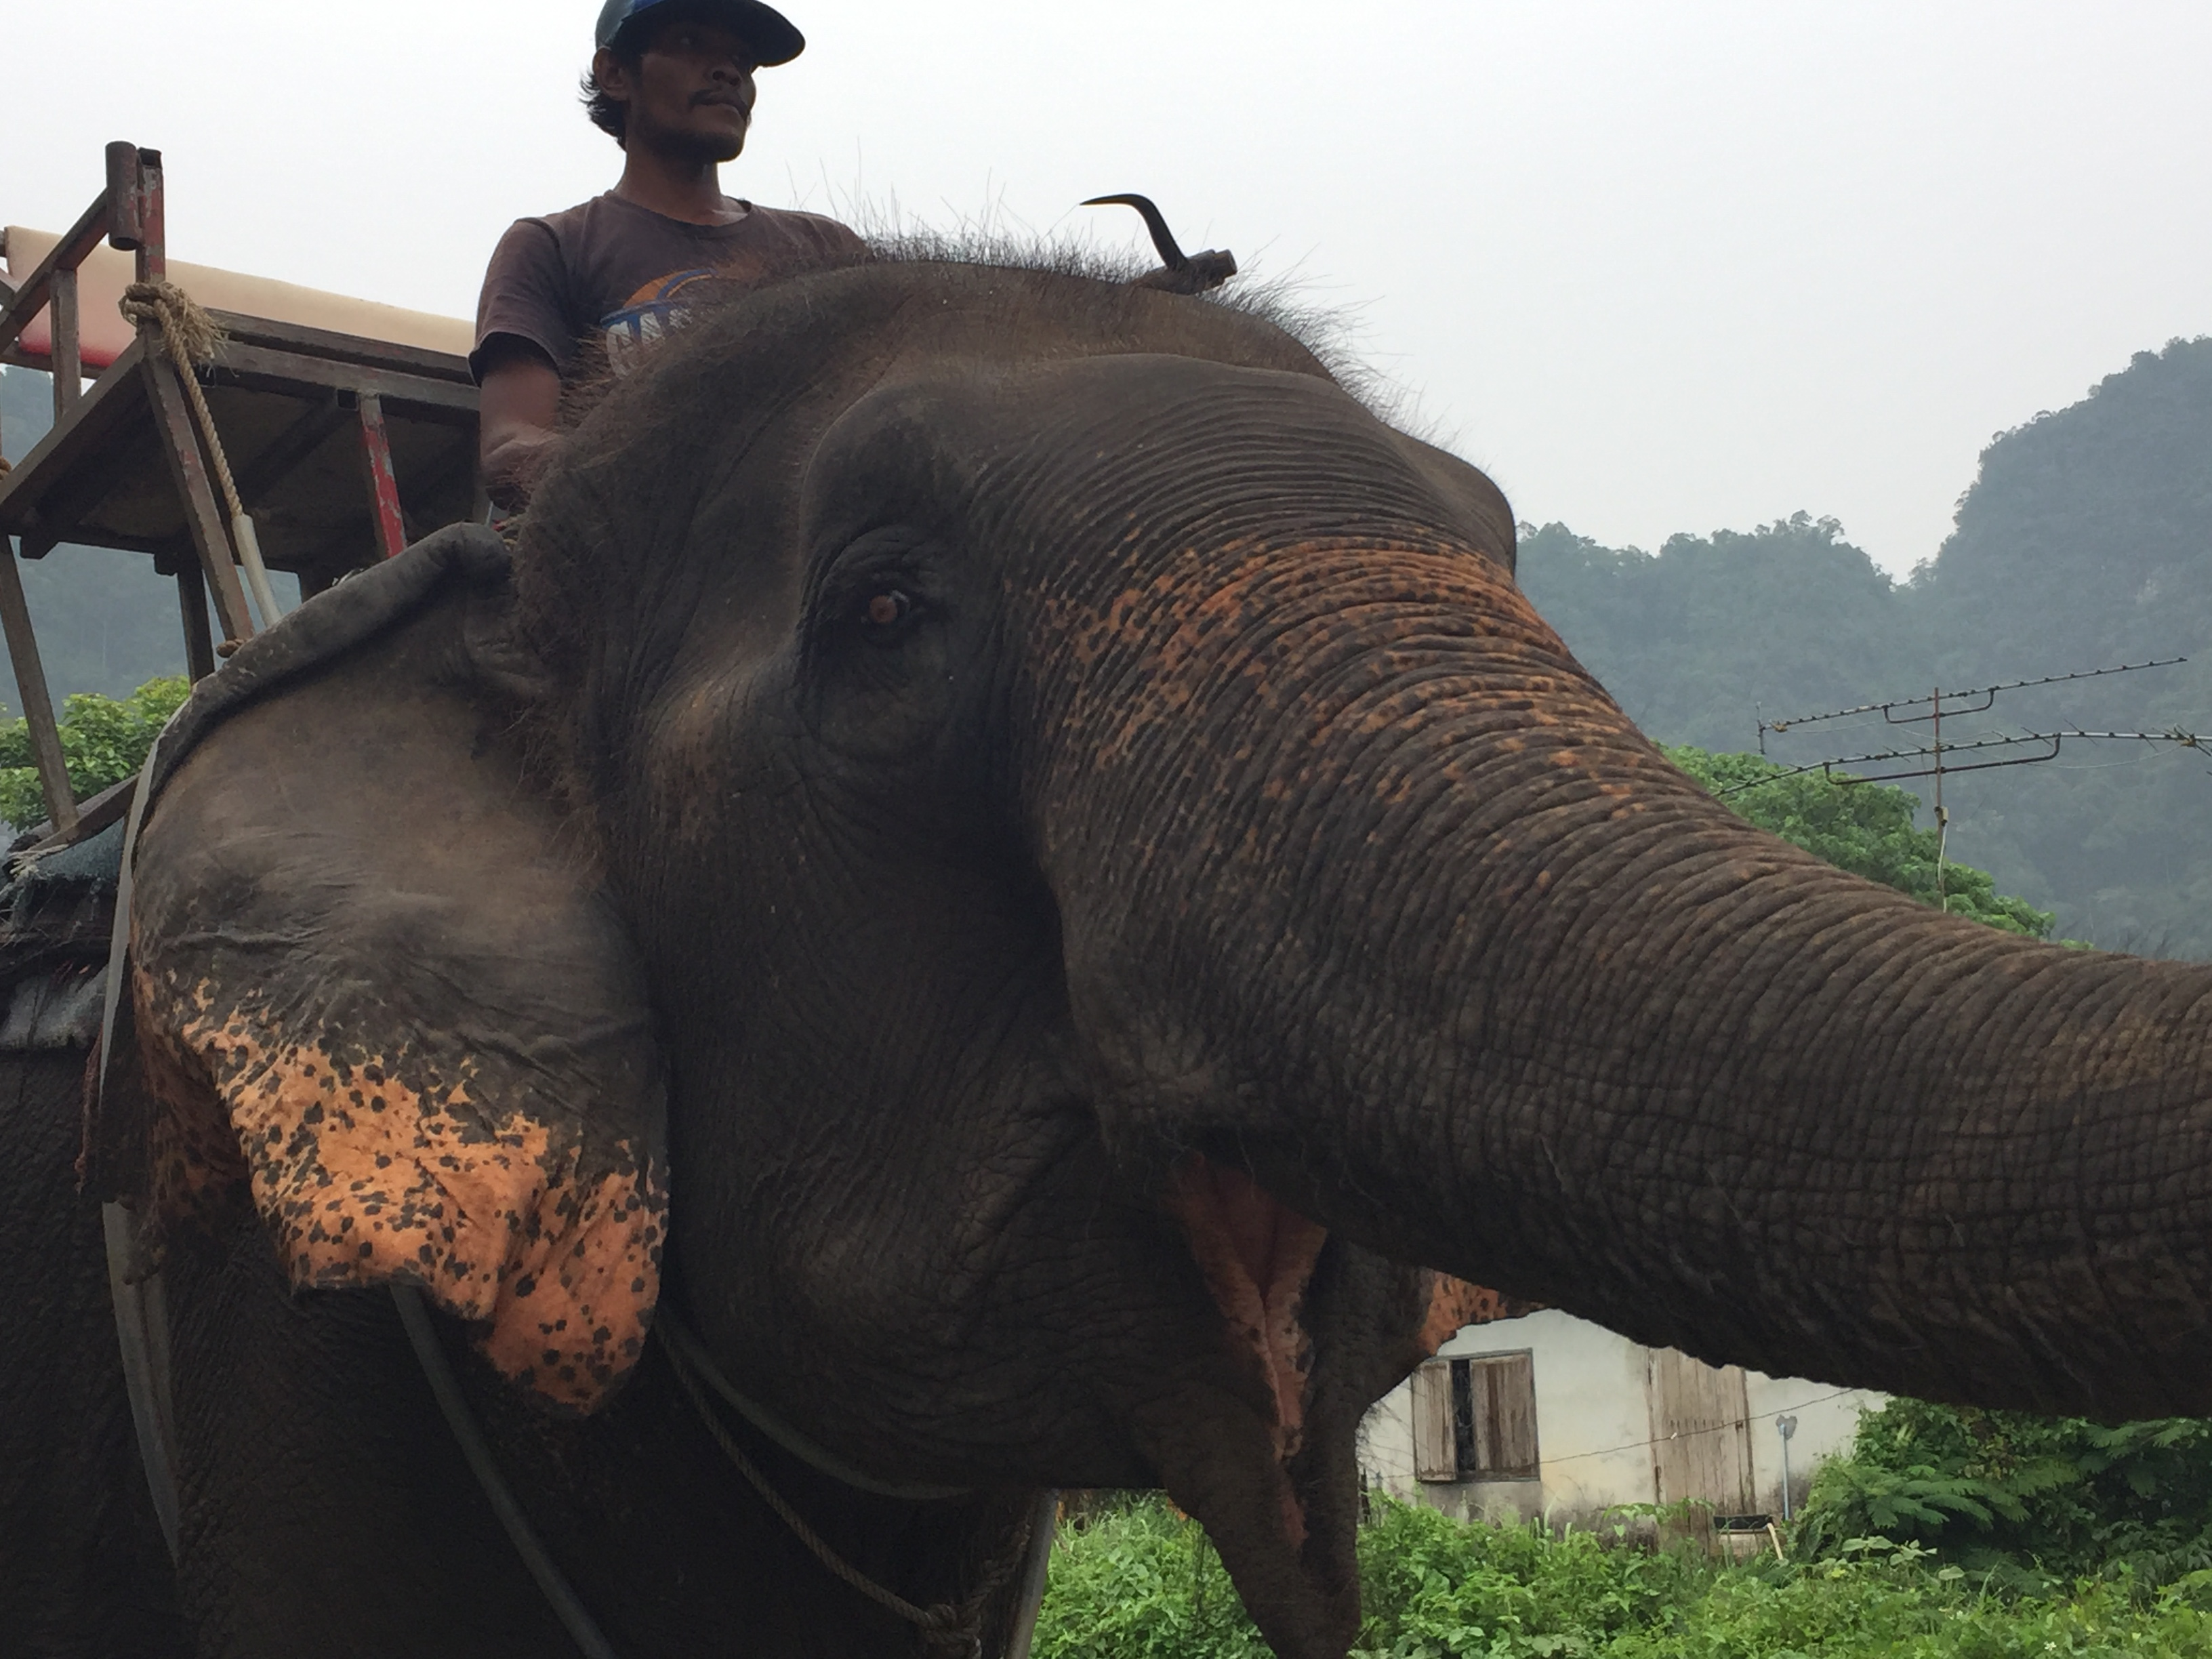 My Moral Dilemma About Riding Elephants